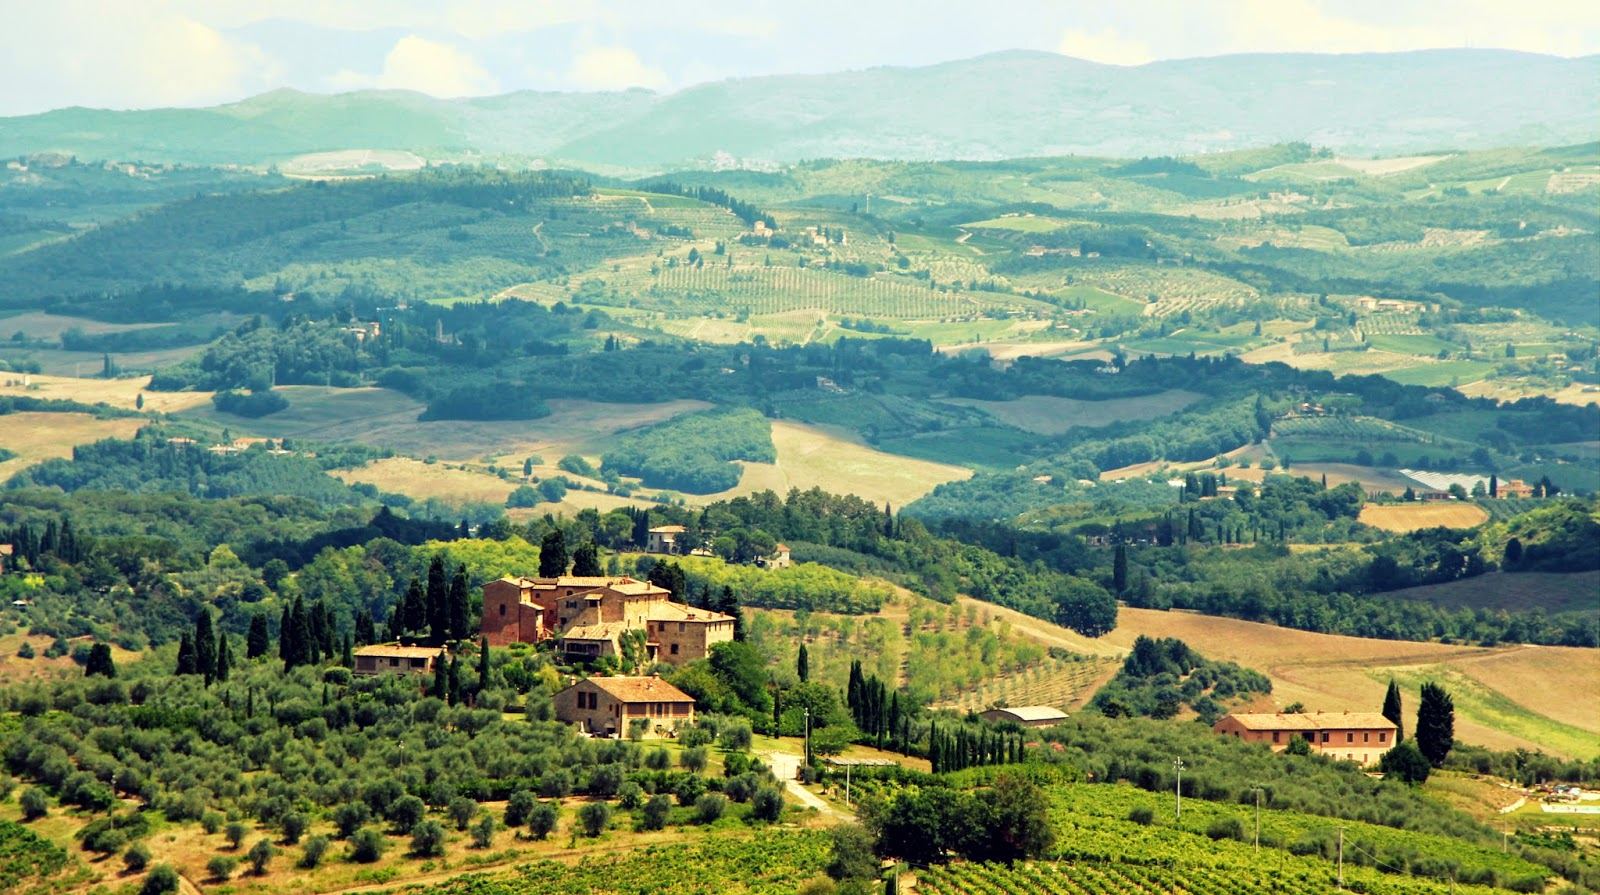 The Tuscan countryside, Italy